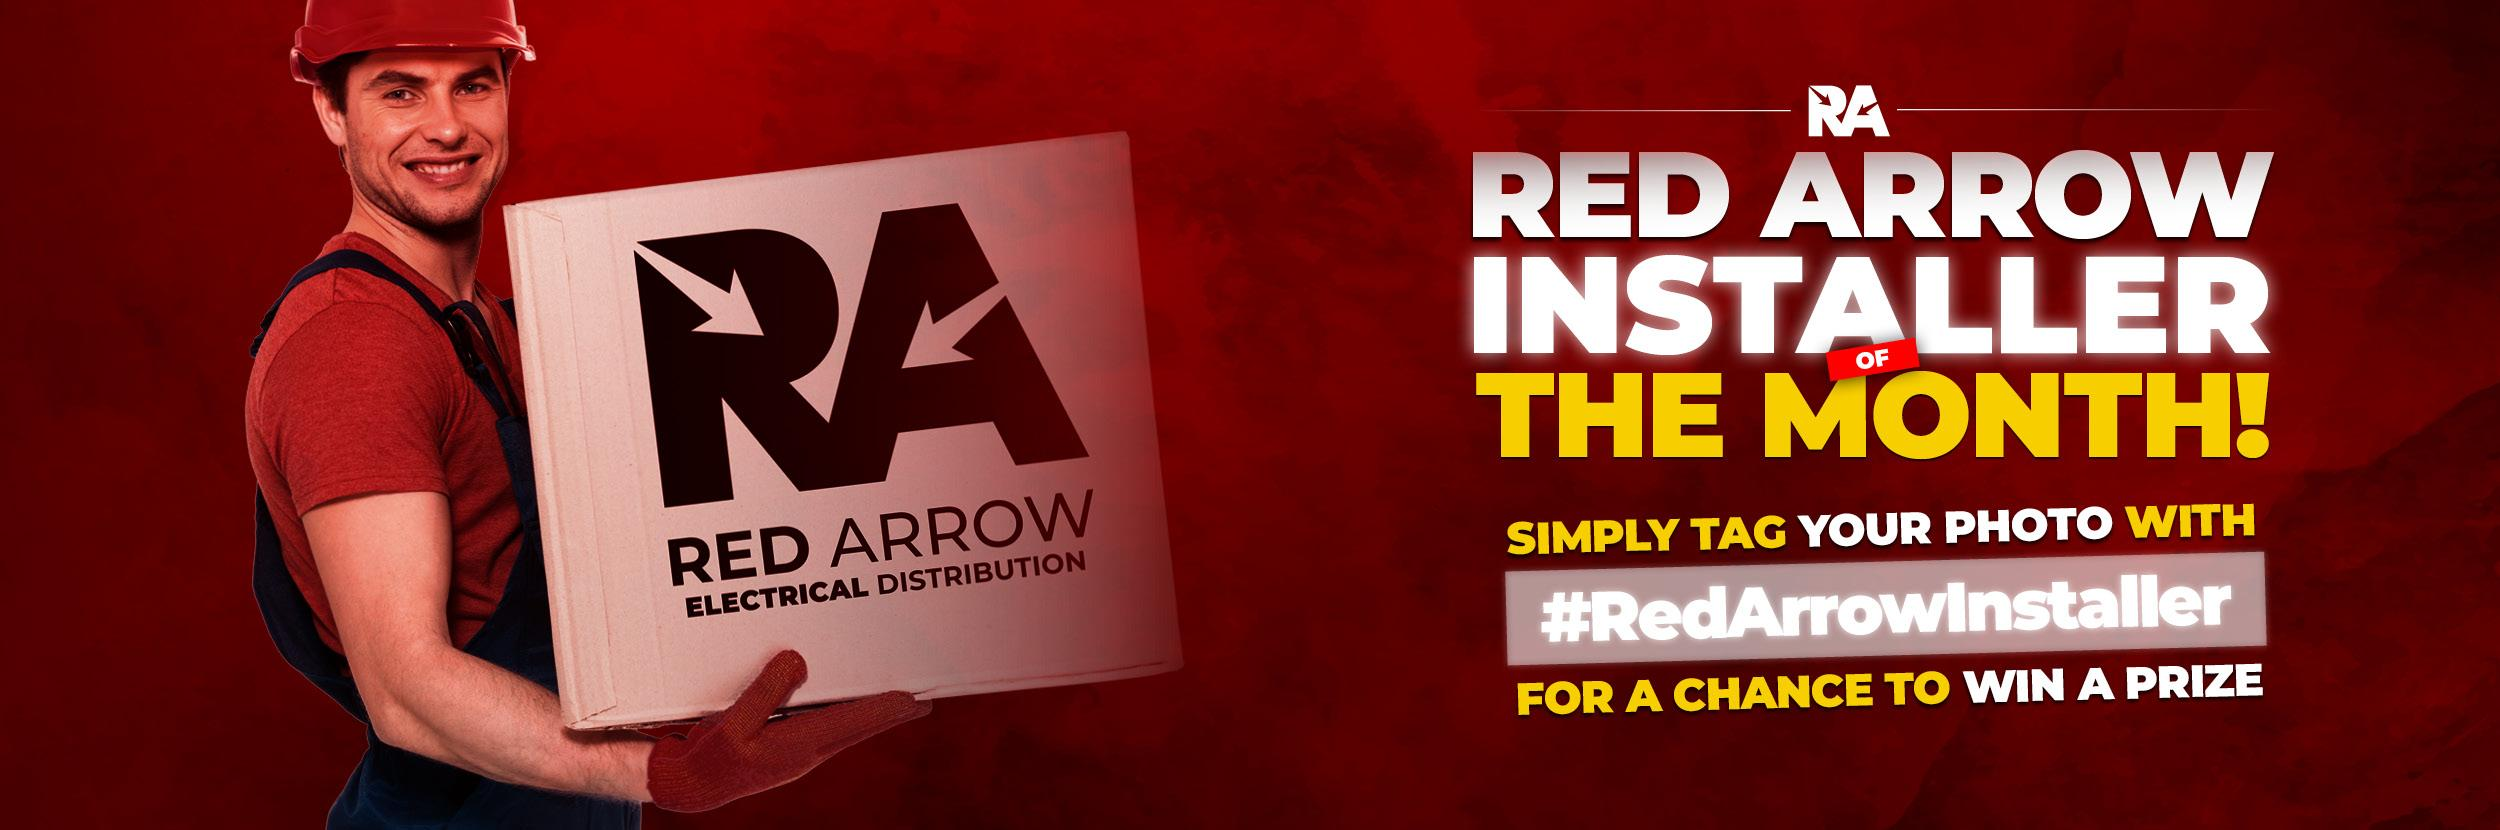 Red Arrow Installer